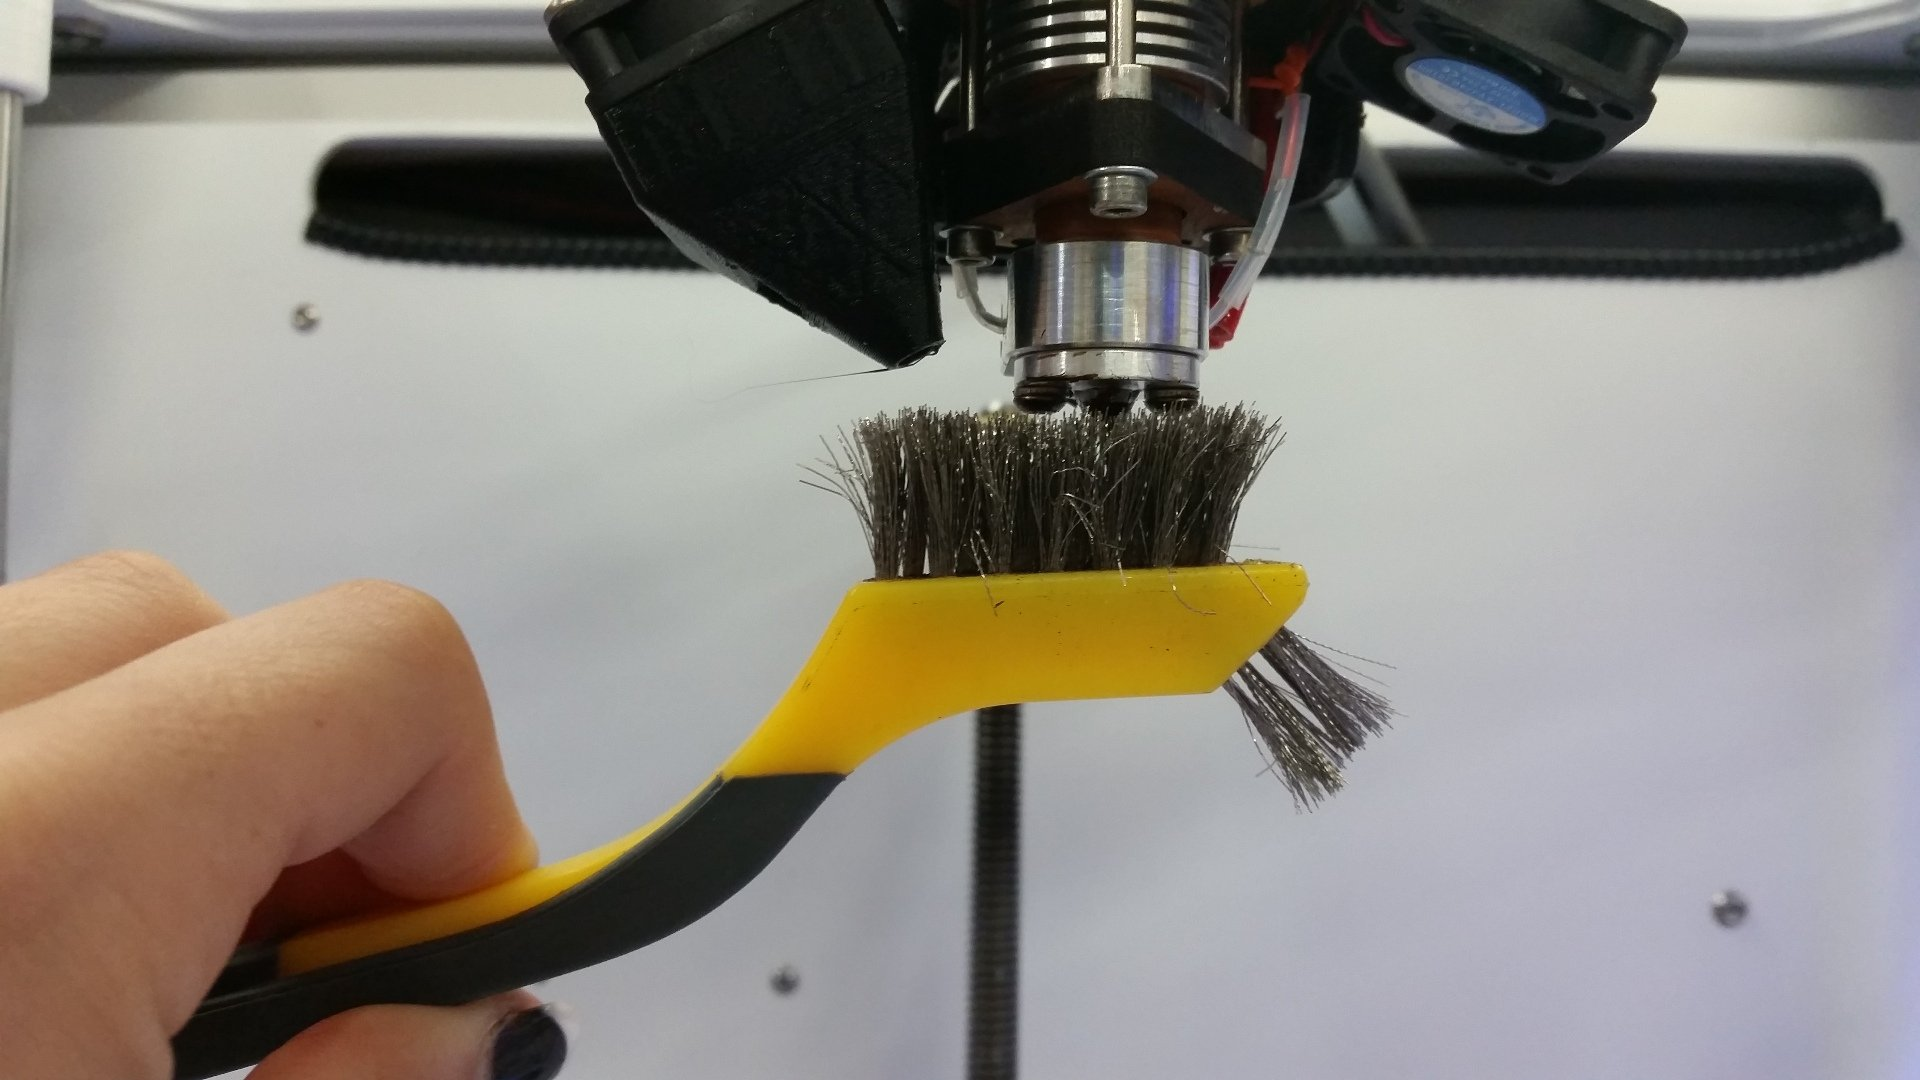 3D Printer Nozzle Cleaning: The Easiest Way to Do It | All3DP